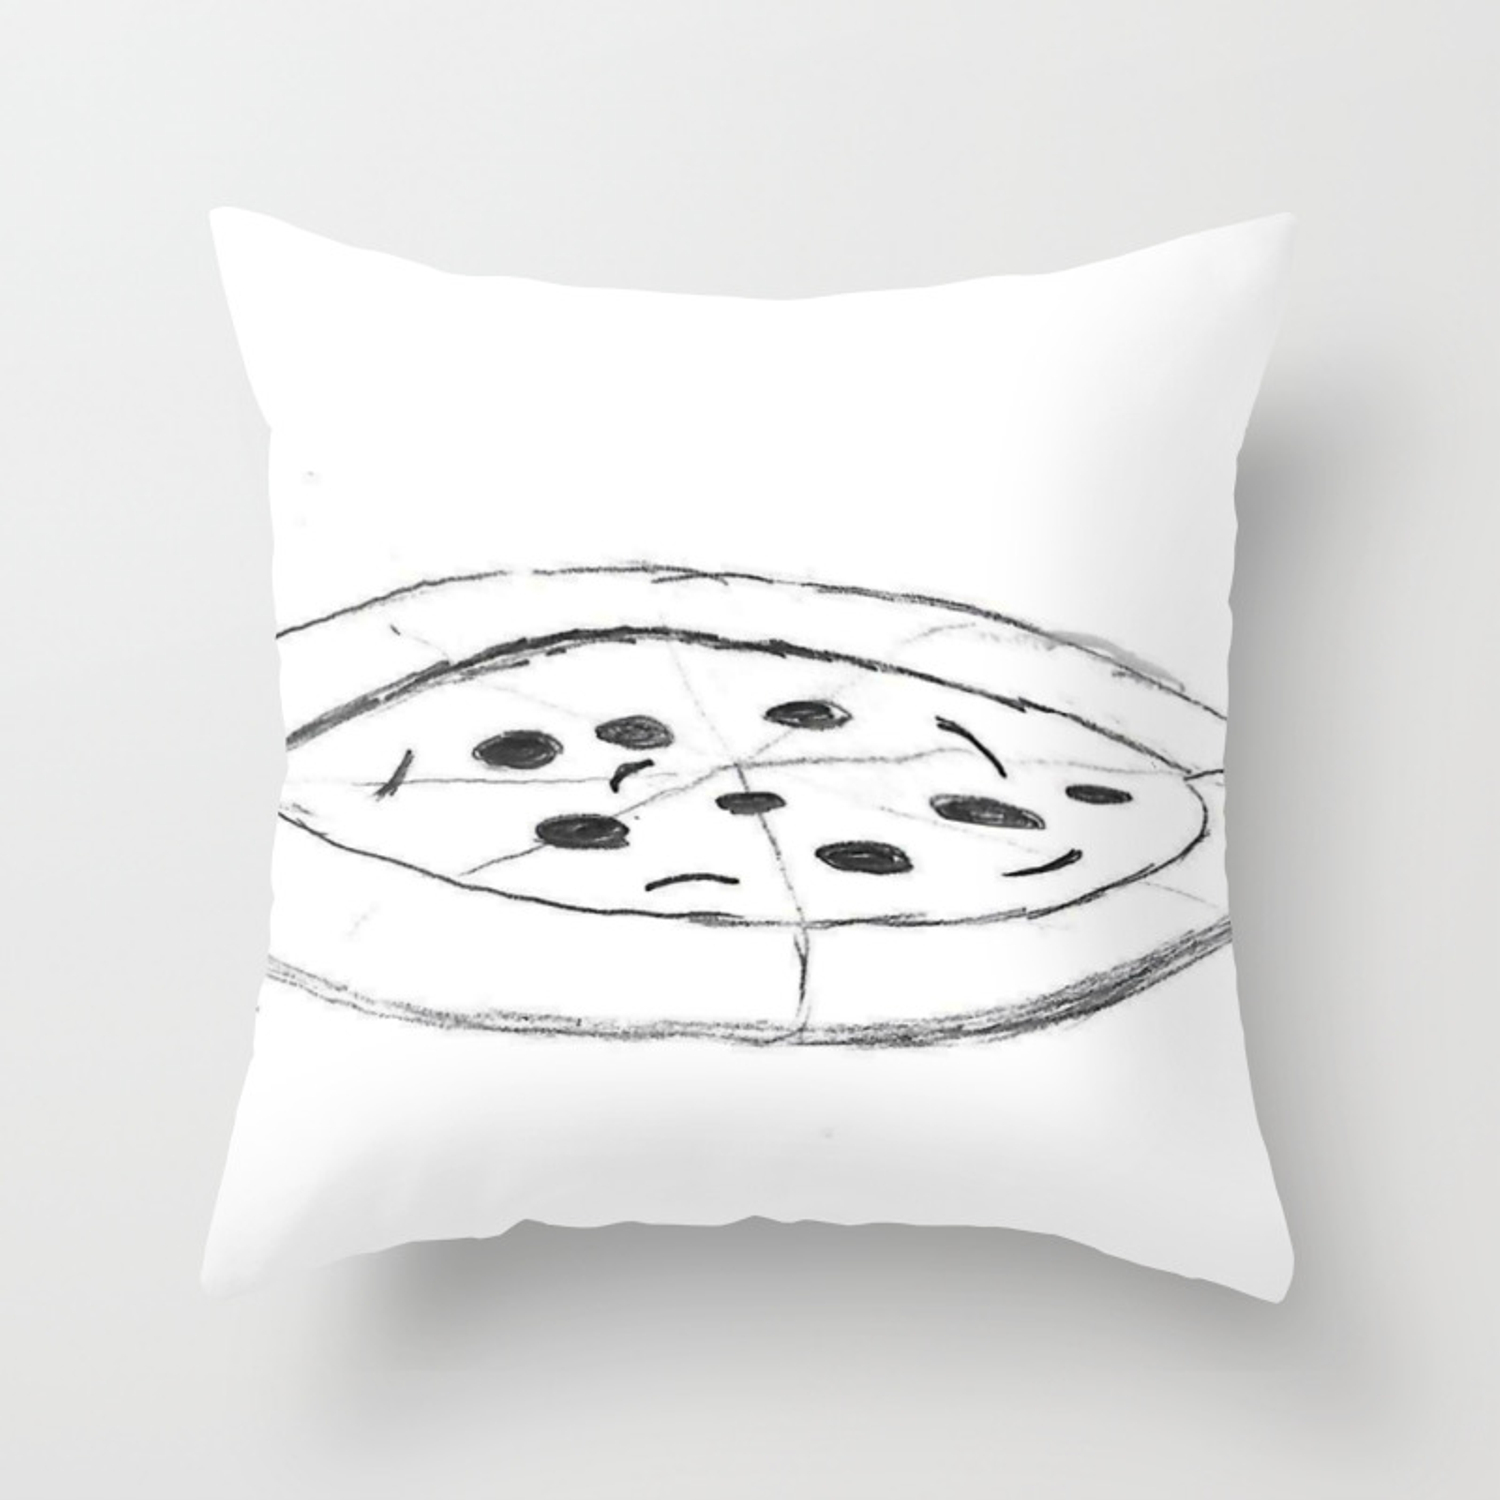 Pizza pencil drawing sketch illustration cartoon black and white comic art foodie throw pillow